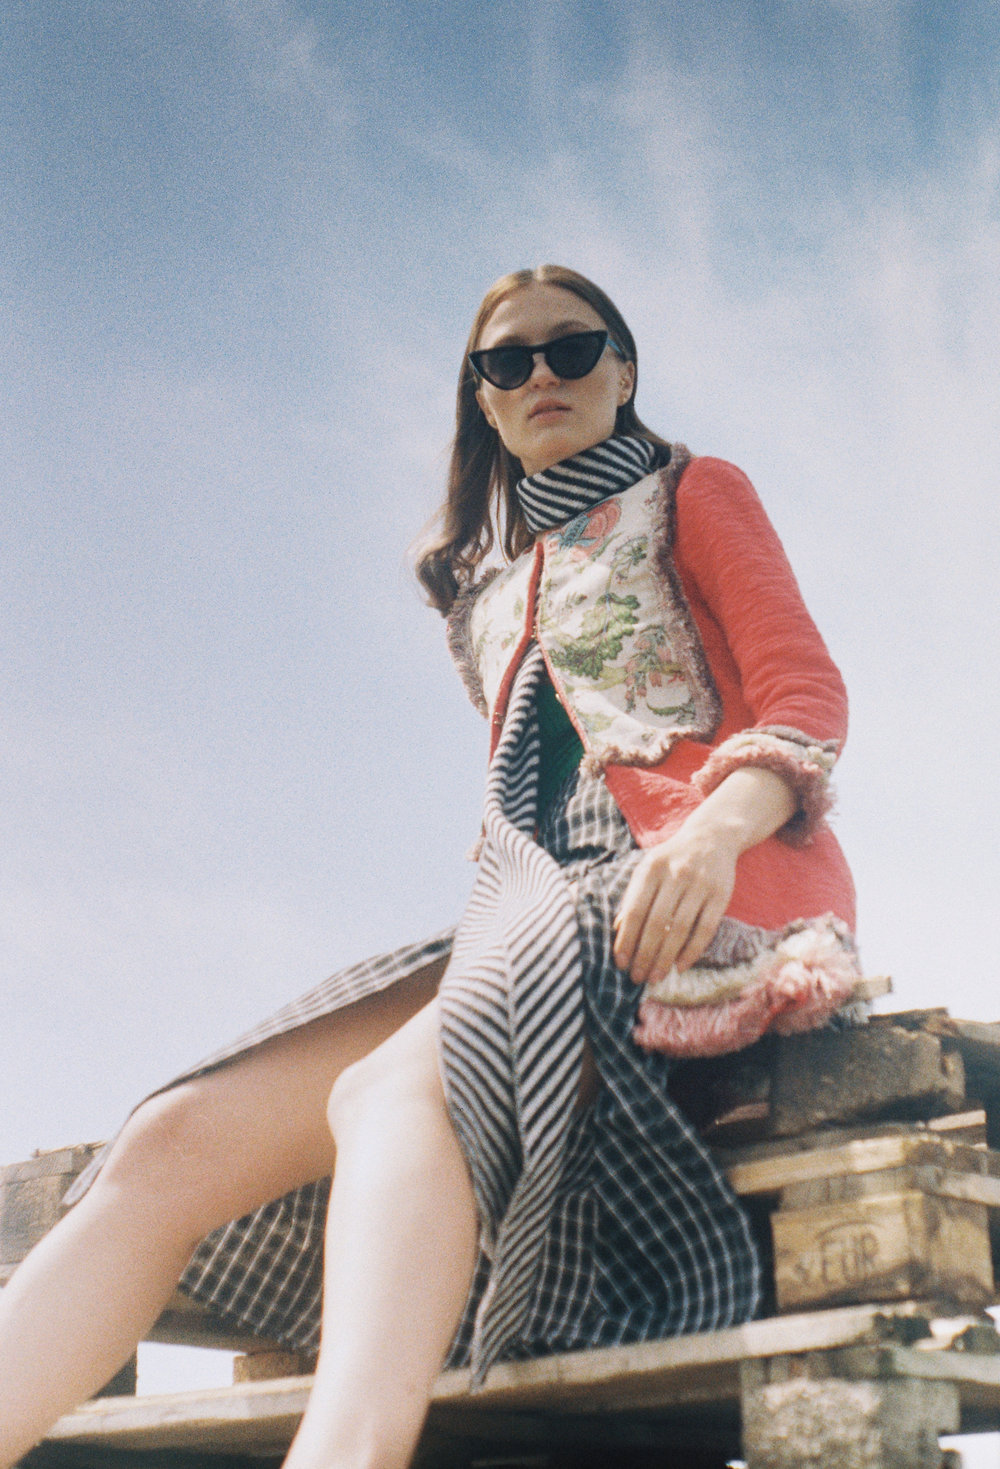 ACC/Sunglasses: Stylist's Own  ACC/Scarf: MAX&Co.  Jacket: The Extreme Collection  Body: Pull&Bear  Skirt: Fashion Union